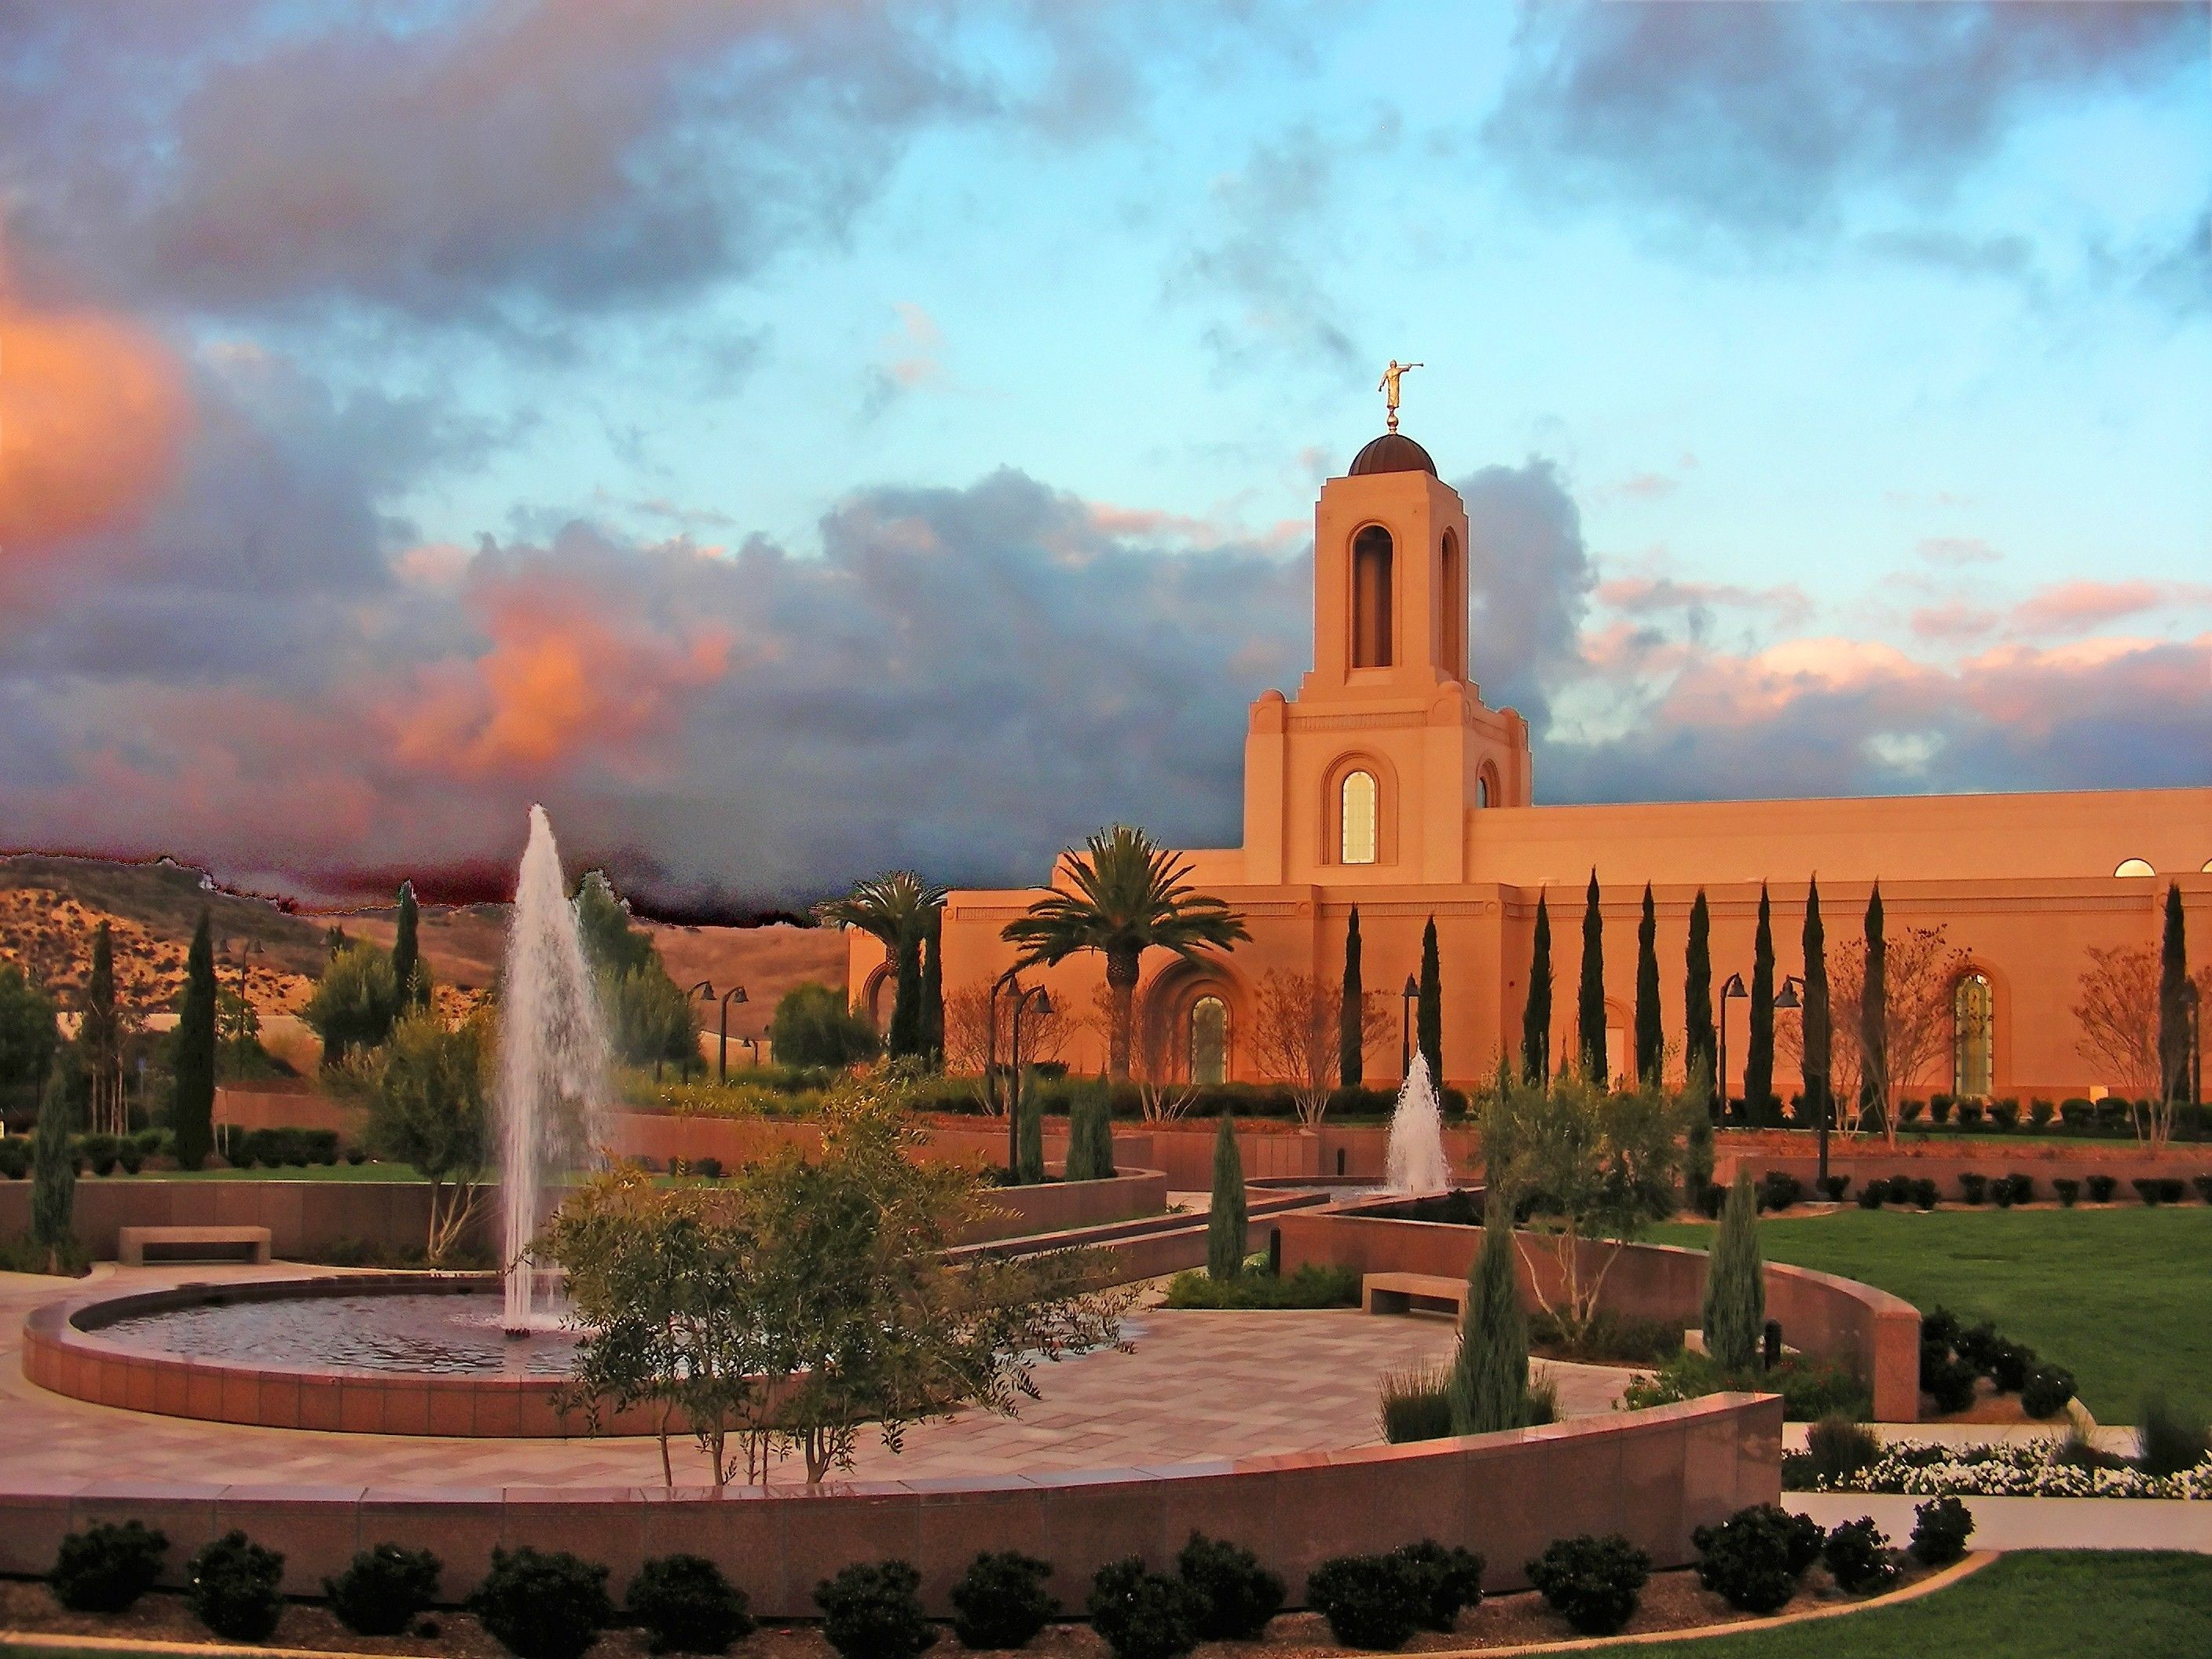 The Newport Beach California Temple at sunset, including fountains and scenery.